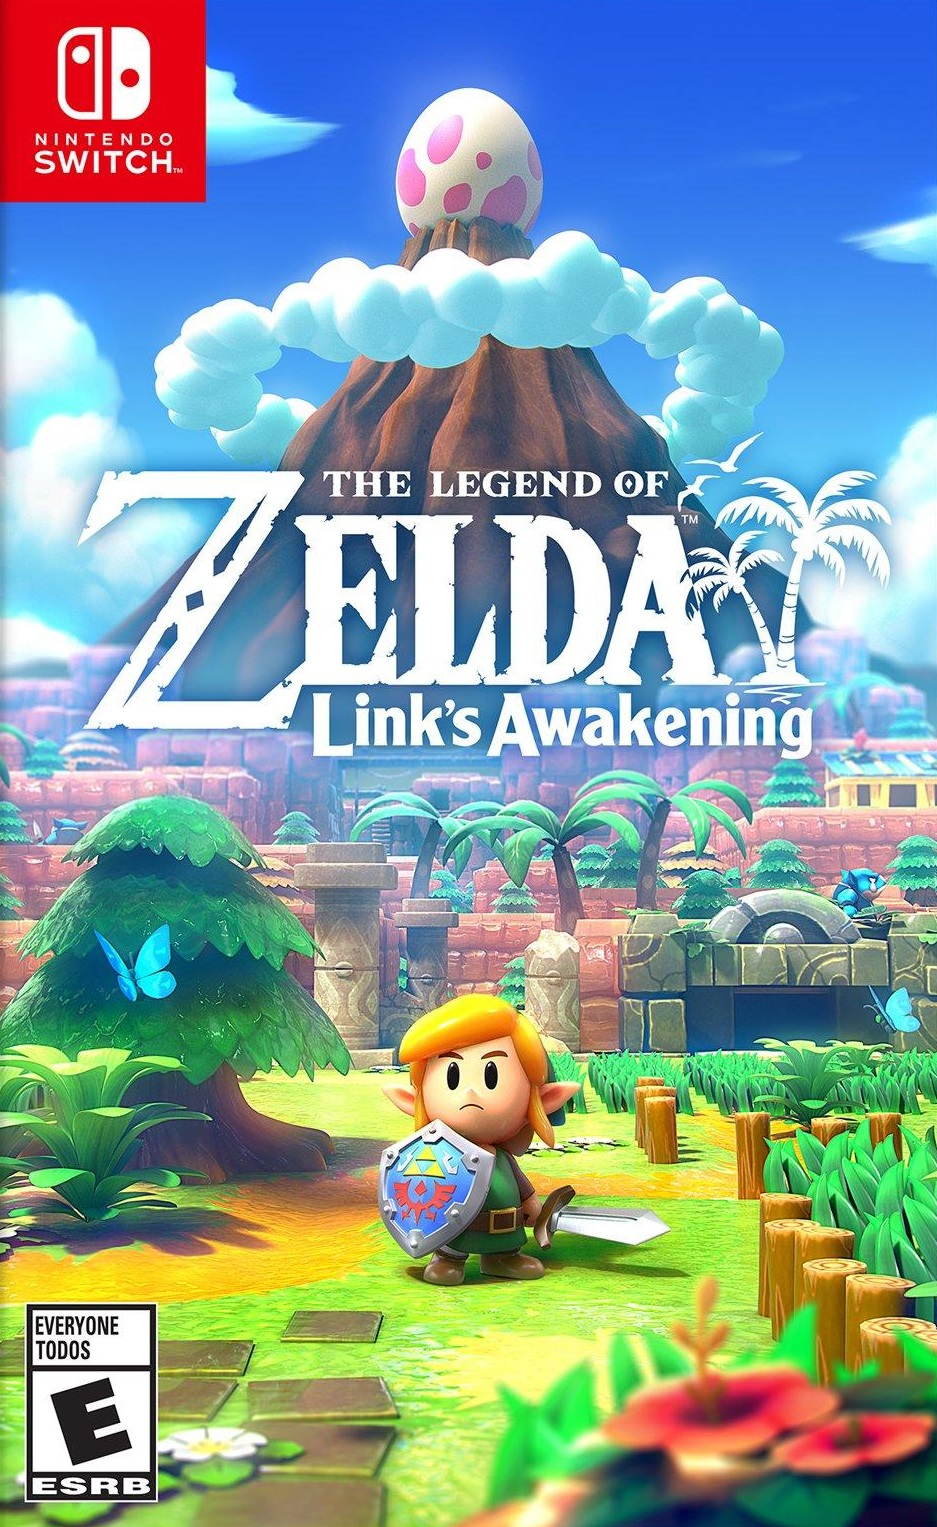 The Legend of Zelda: Links Awakening